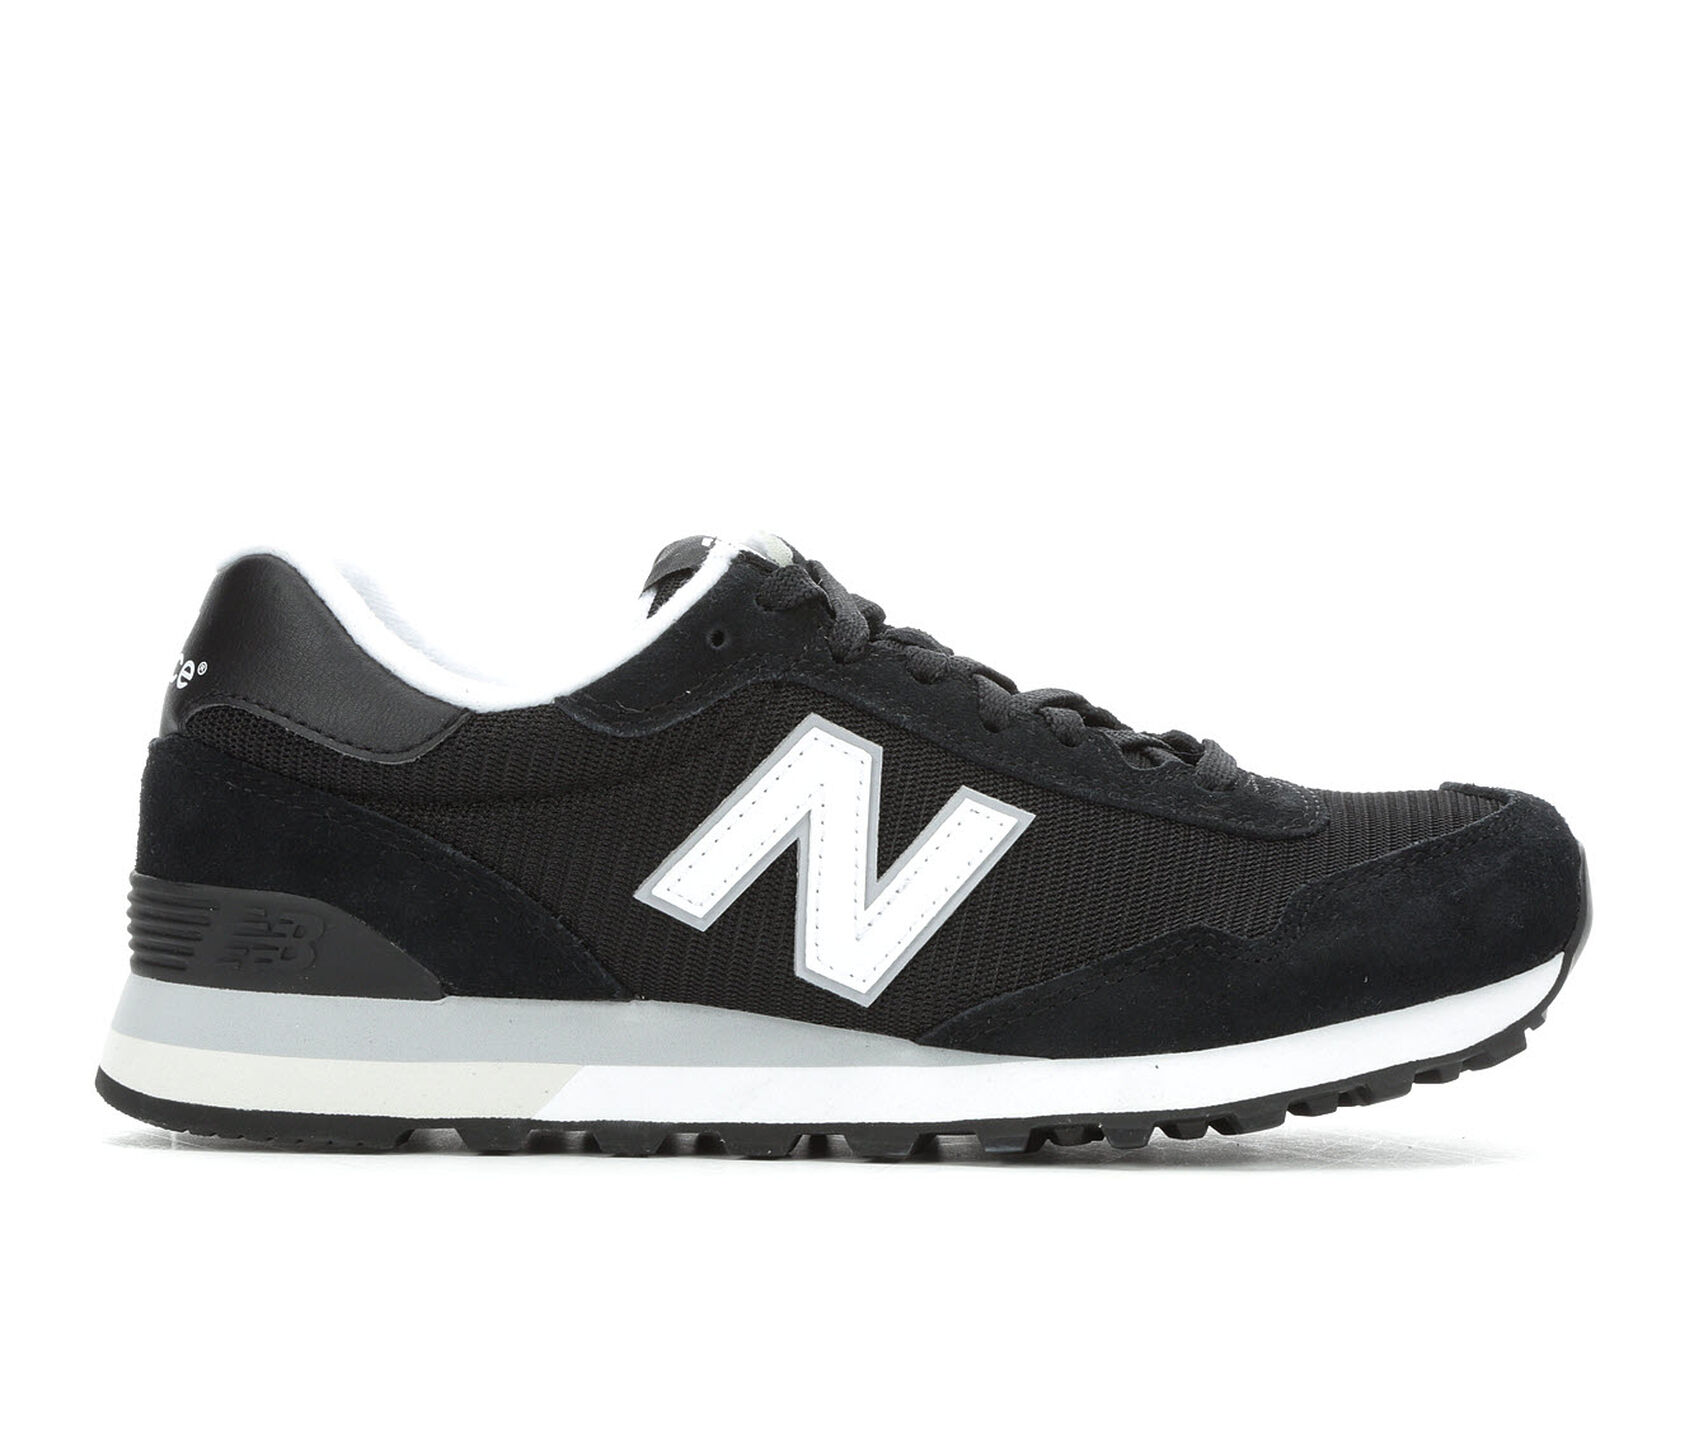 incredible prices great variety models lowest discount Women's New Balance WL515 Retro Sneakers